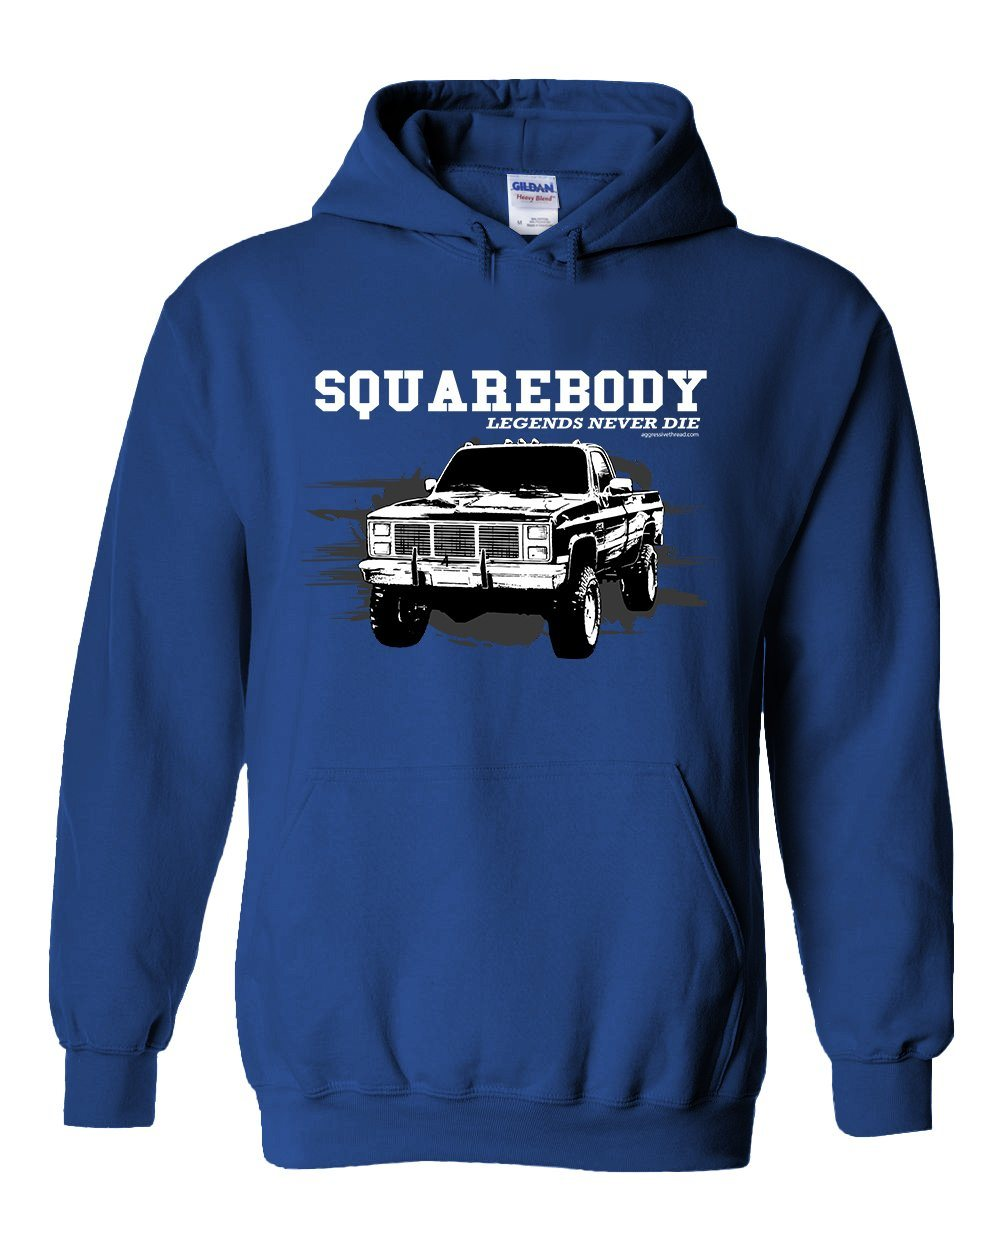 Squarebody GMC Chevy Sweatshirt Hoodie (🏷️10% OFF - Purchase 2 Or More Items)